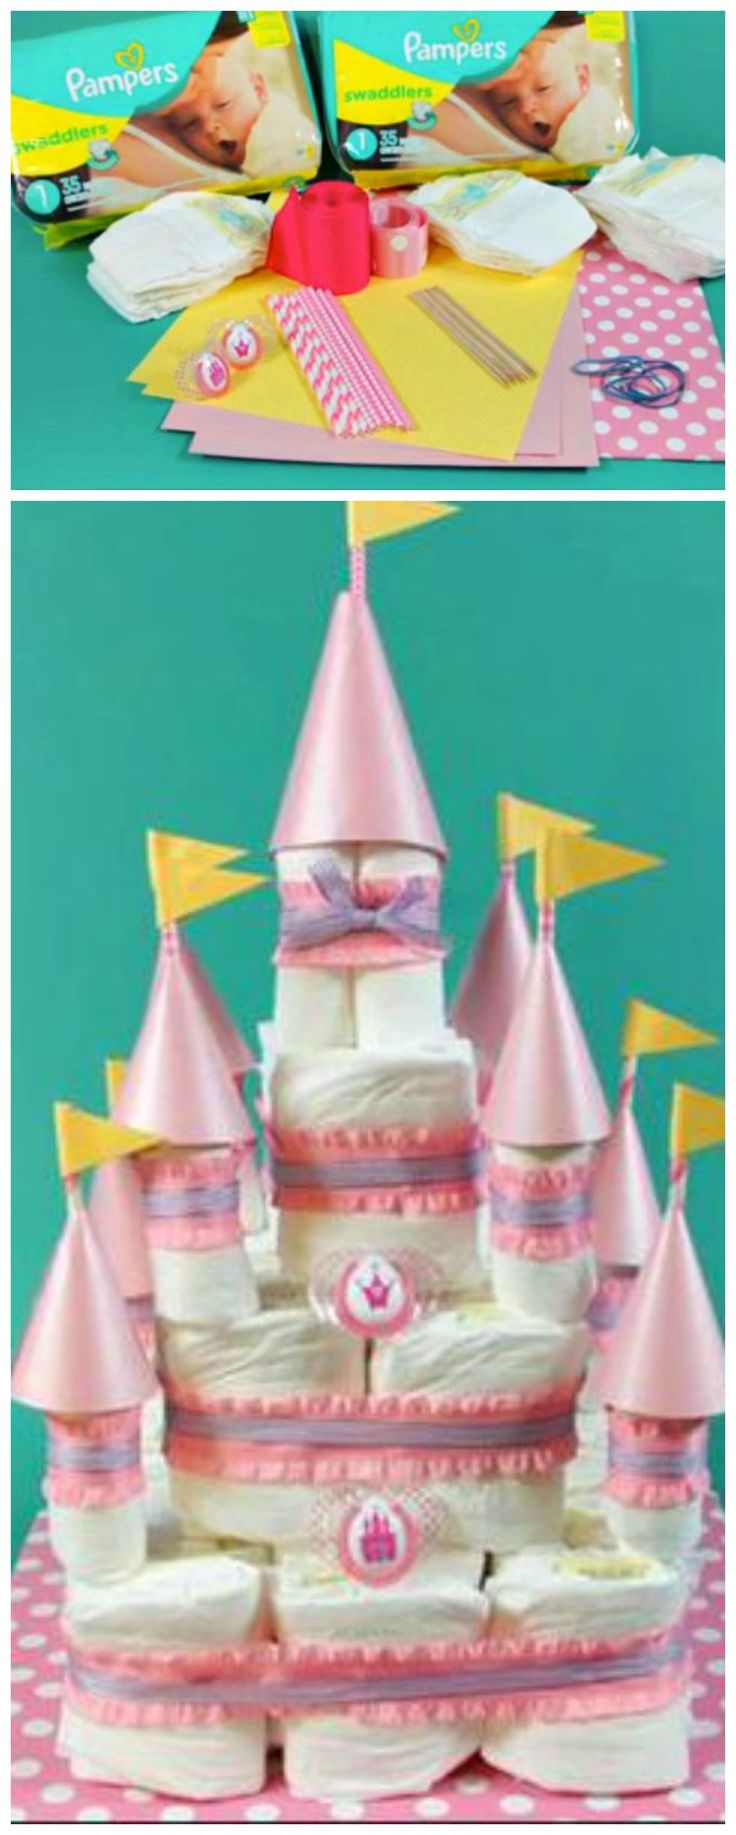 How to make a paper castle decoration - Learn How To Create This Fun Diy Princess Diaper Cake Castle With An Easy Step By Step Video This Would Make A Wonderful Baby Shower Gift Decoration